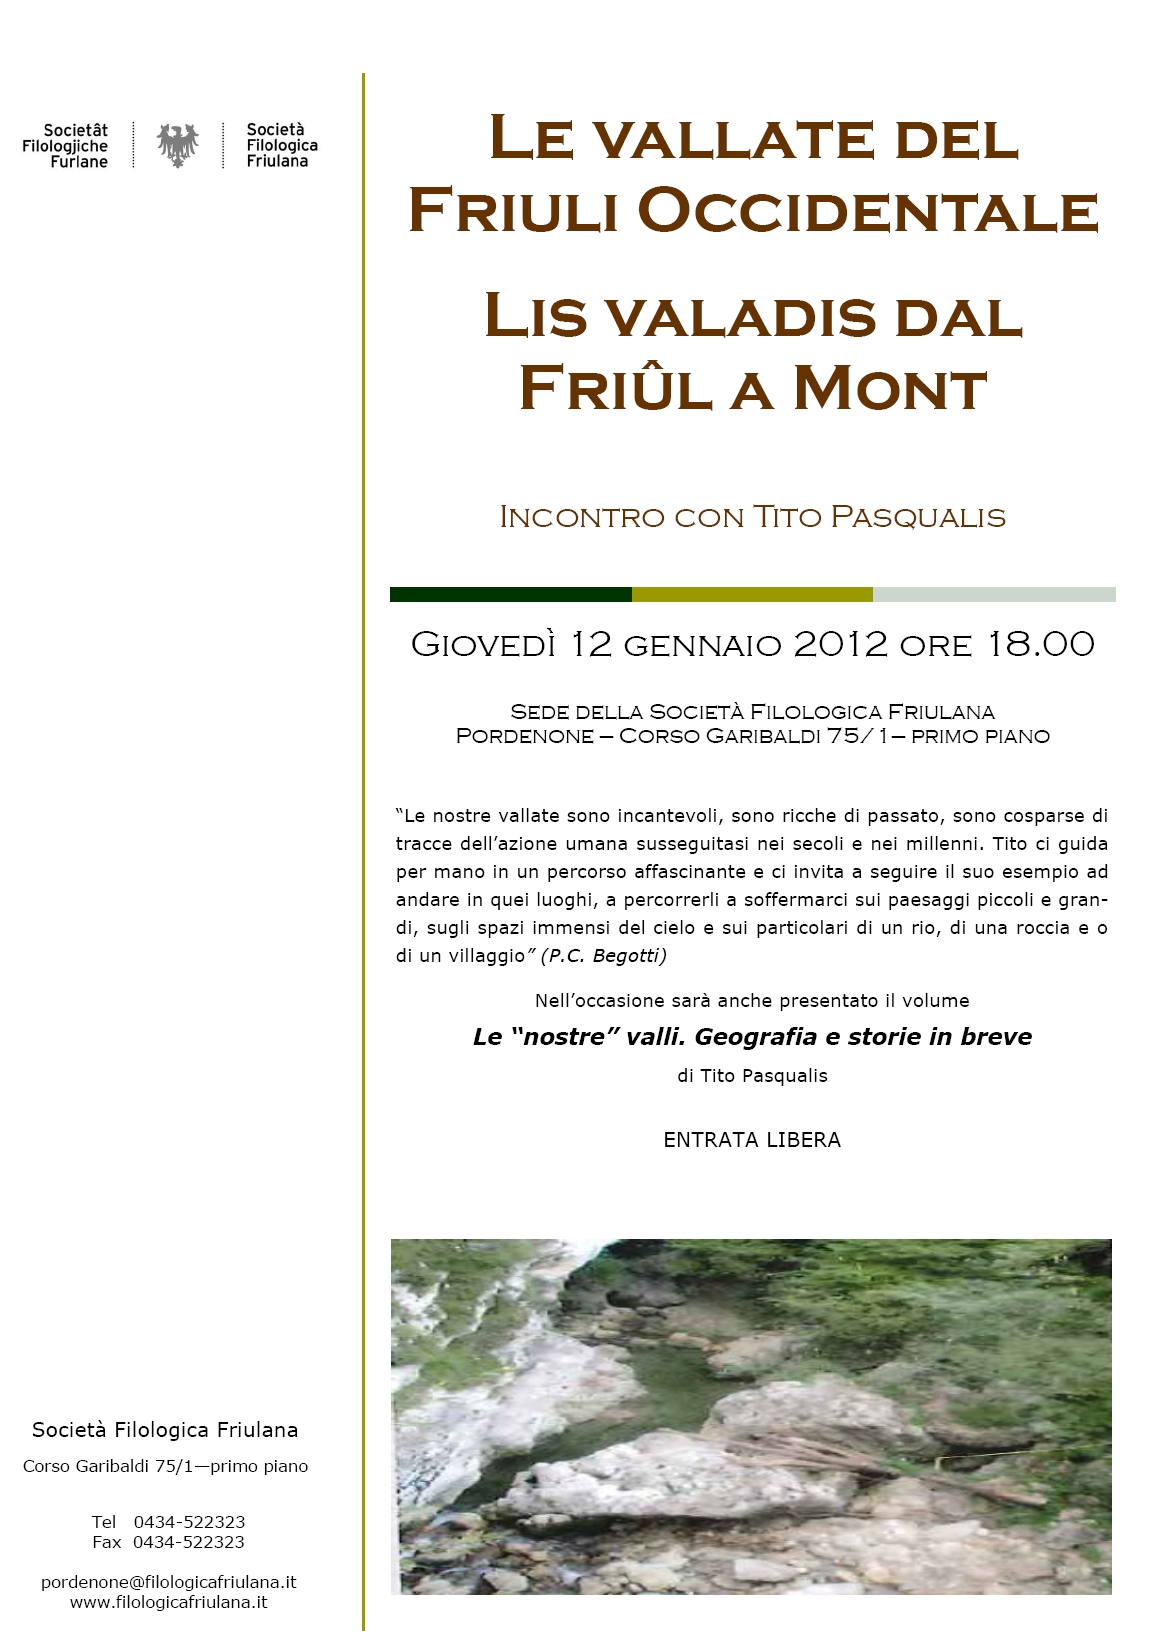 Vallate Friuli_occidentale